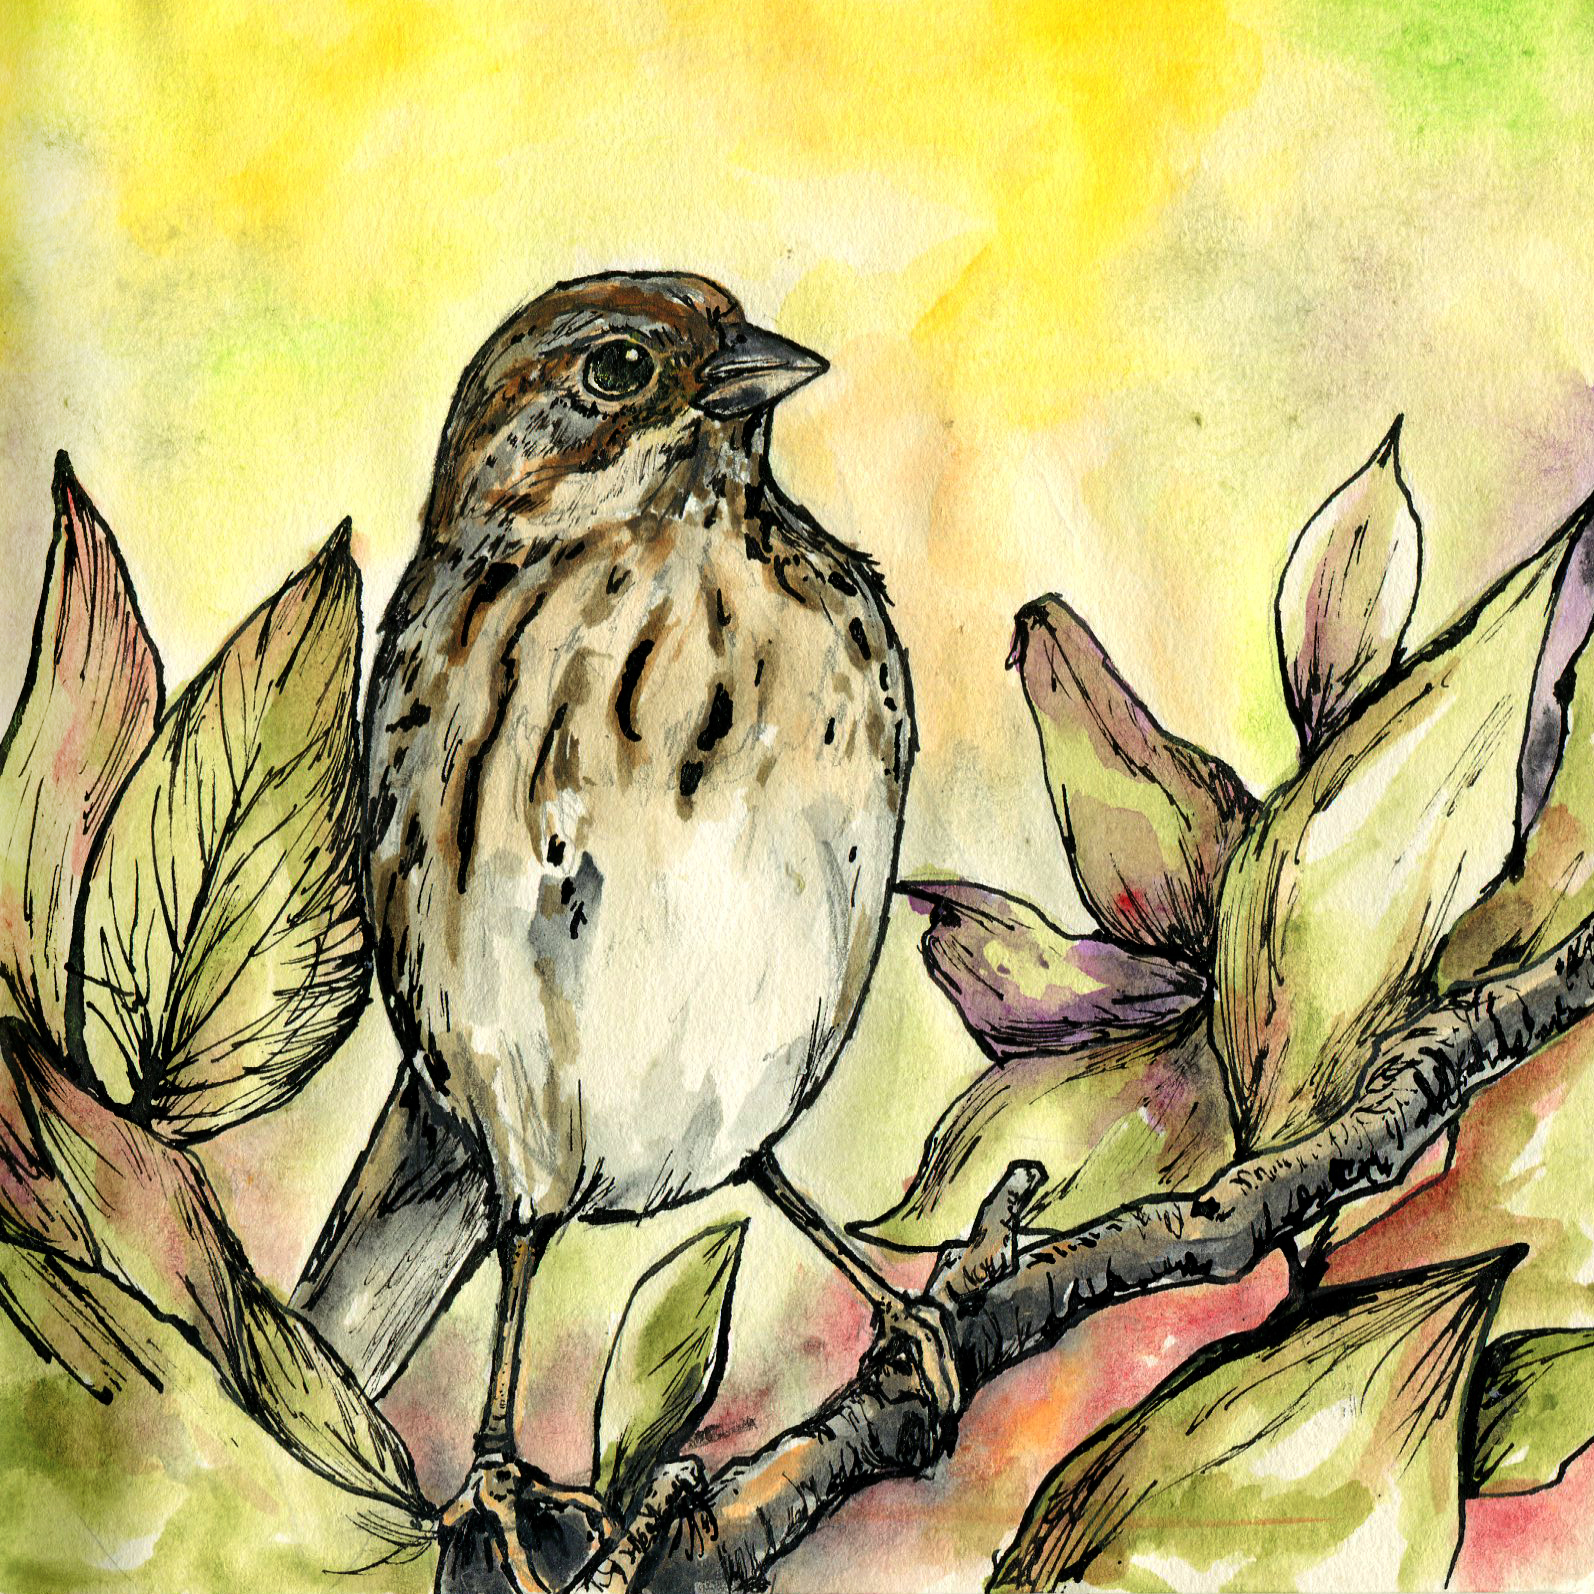 212. Lincoln's Sparrow